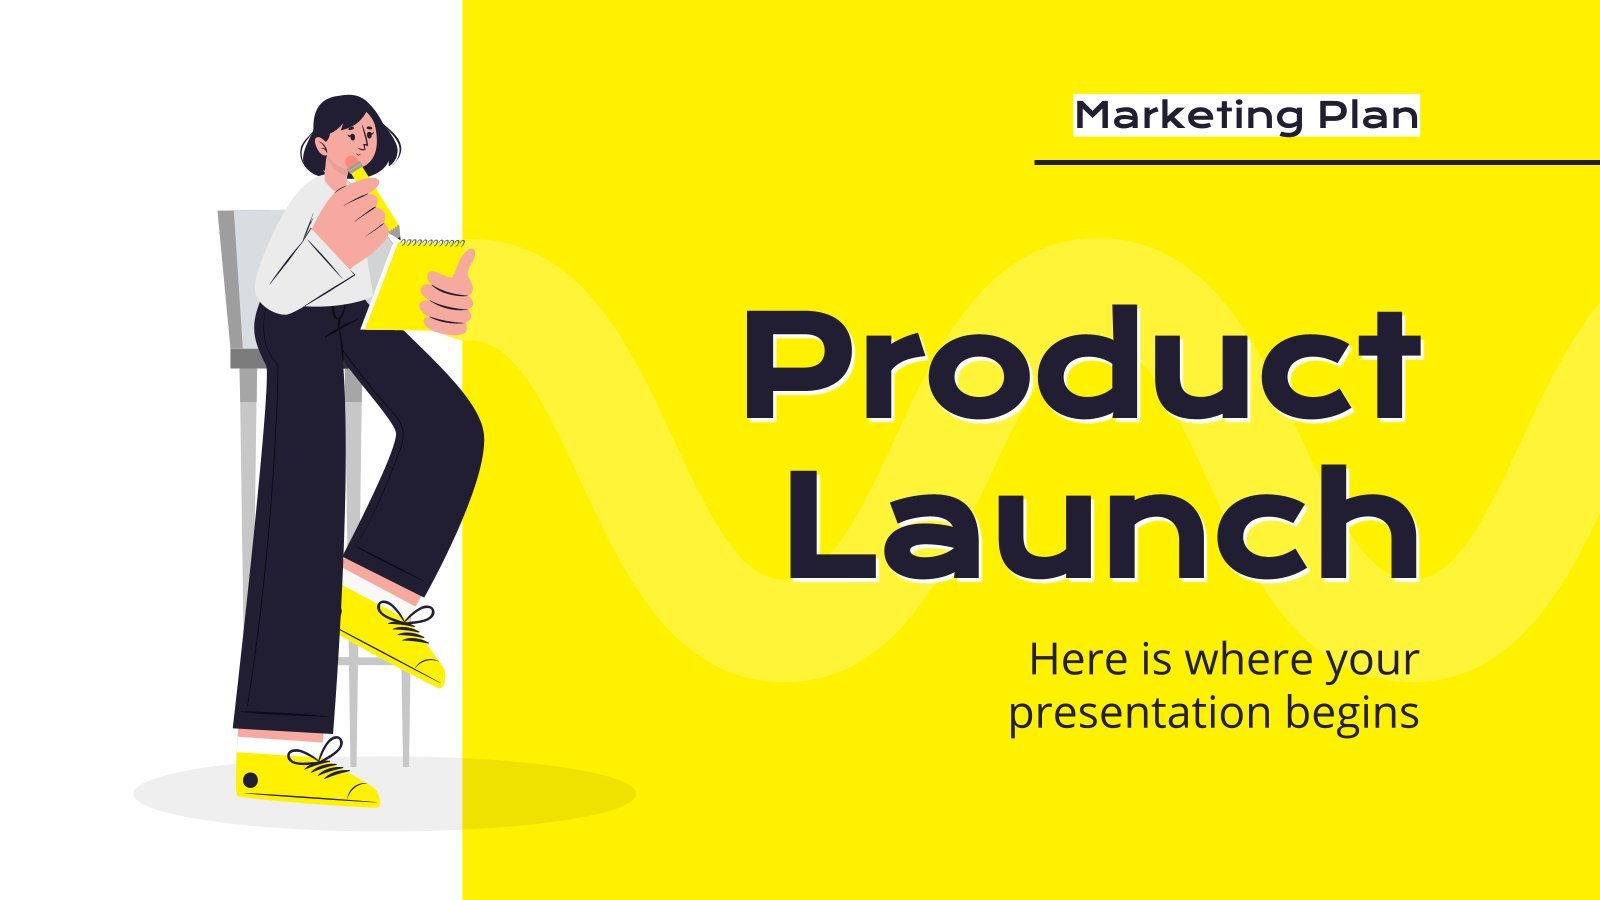 Product Launch Marketing Plan presentation template